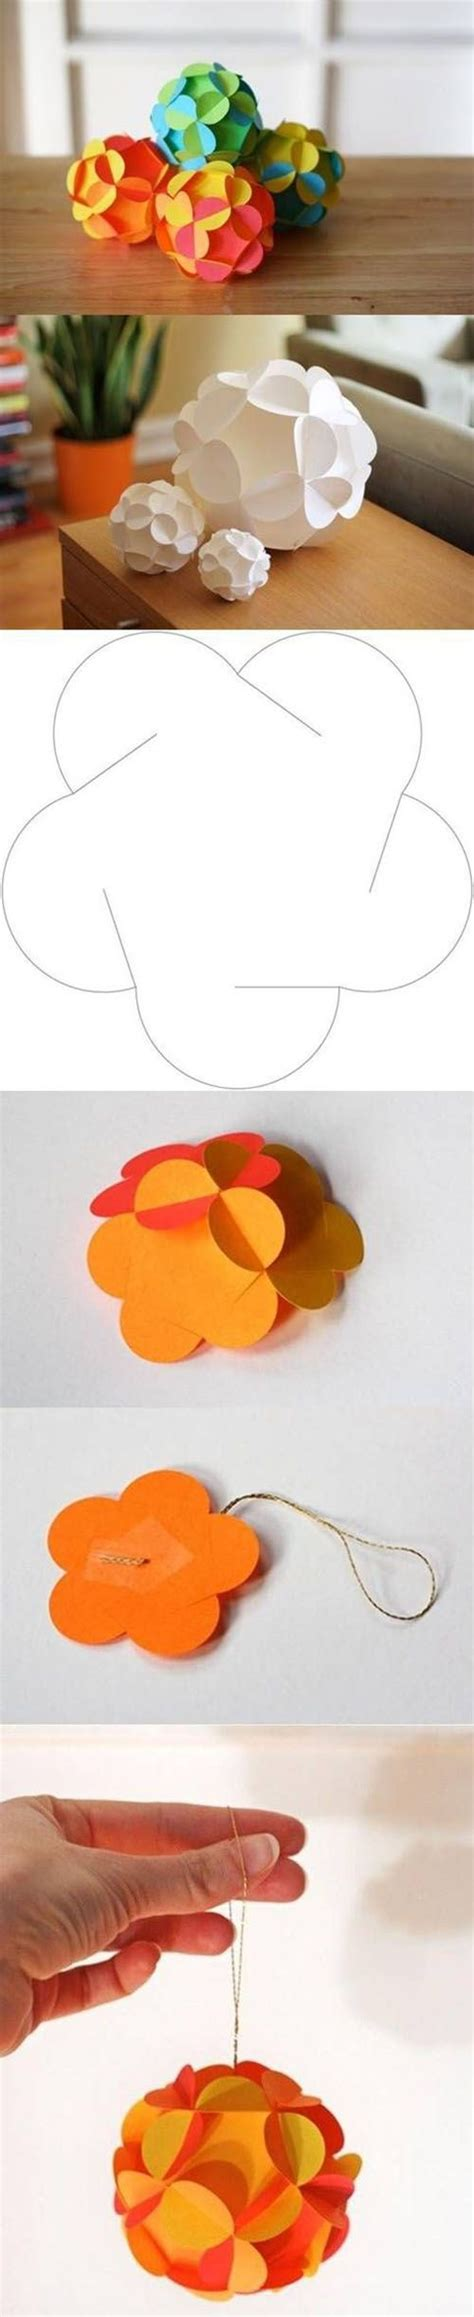 Paper Balls Craft - beautiful paper craft diy crafts projects to try